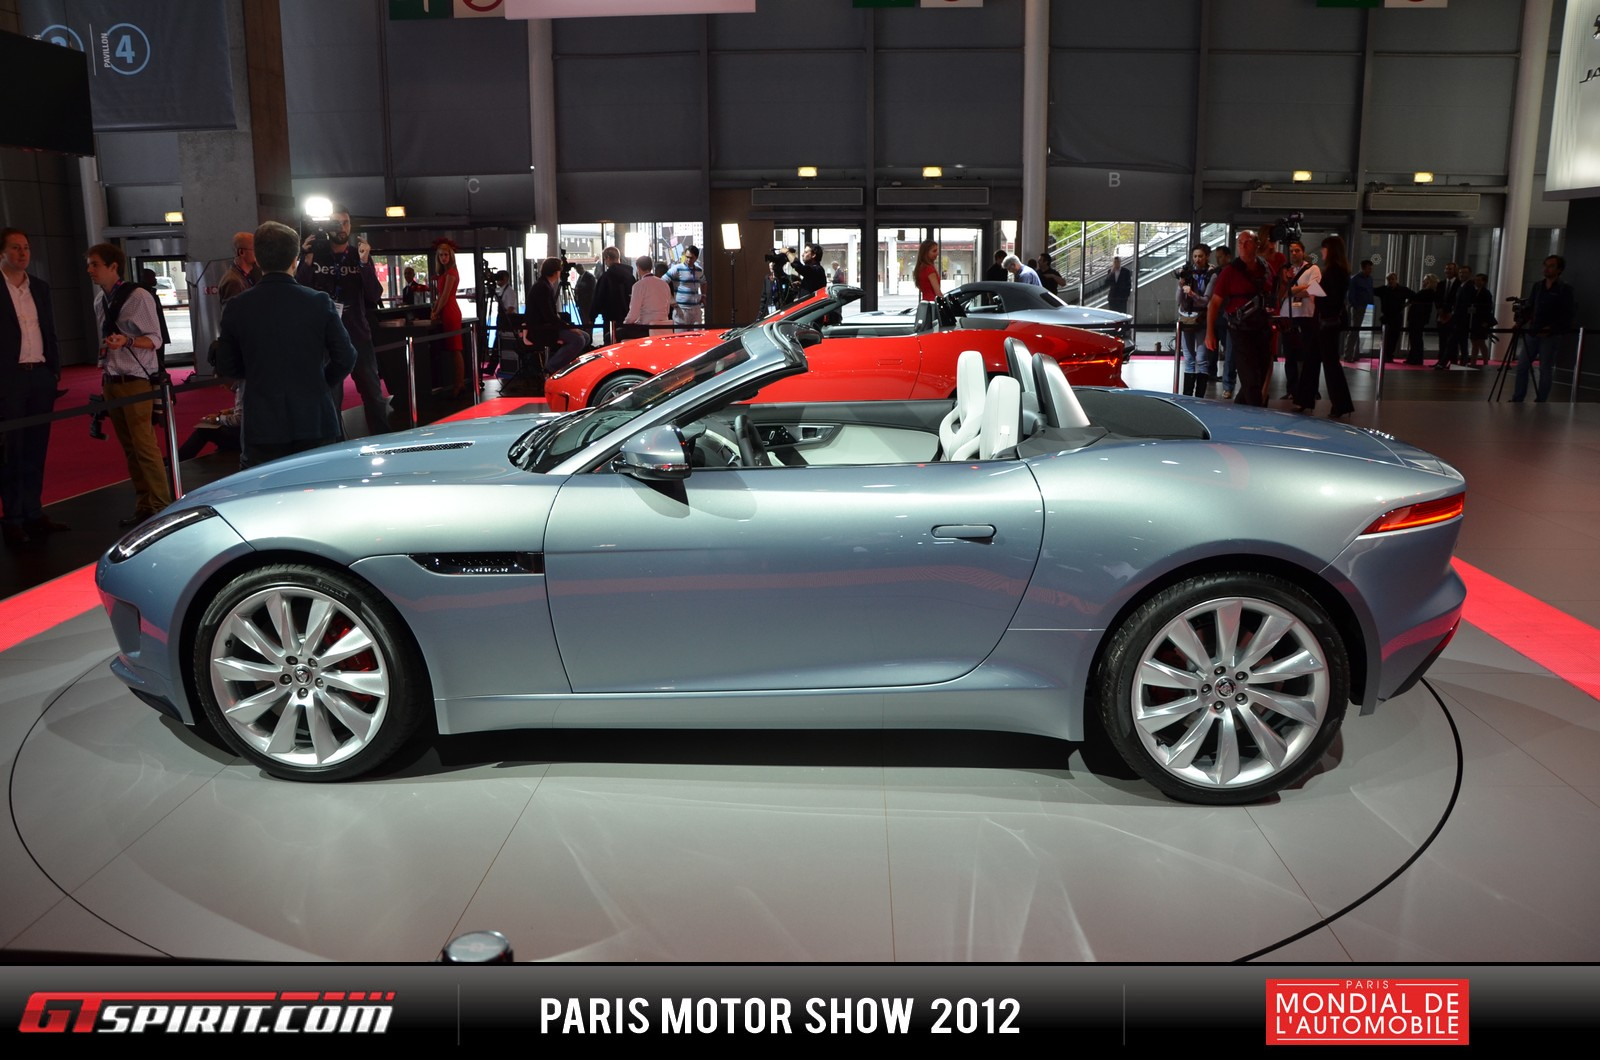 pictures of 2012 jaguar f type jaguar forums jaguar enthusiasts forum. Black Bedroom Furniture Sets. Home Design Ideas